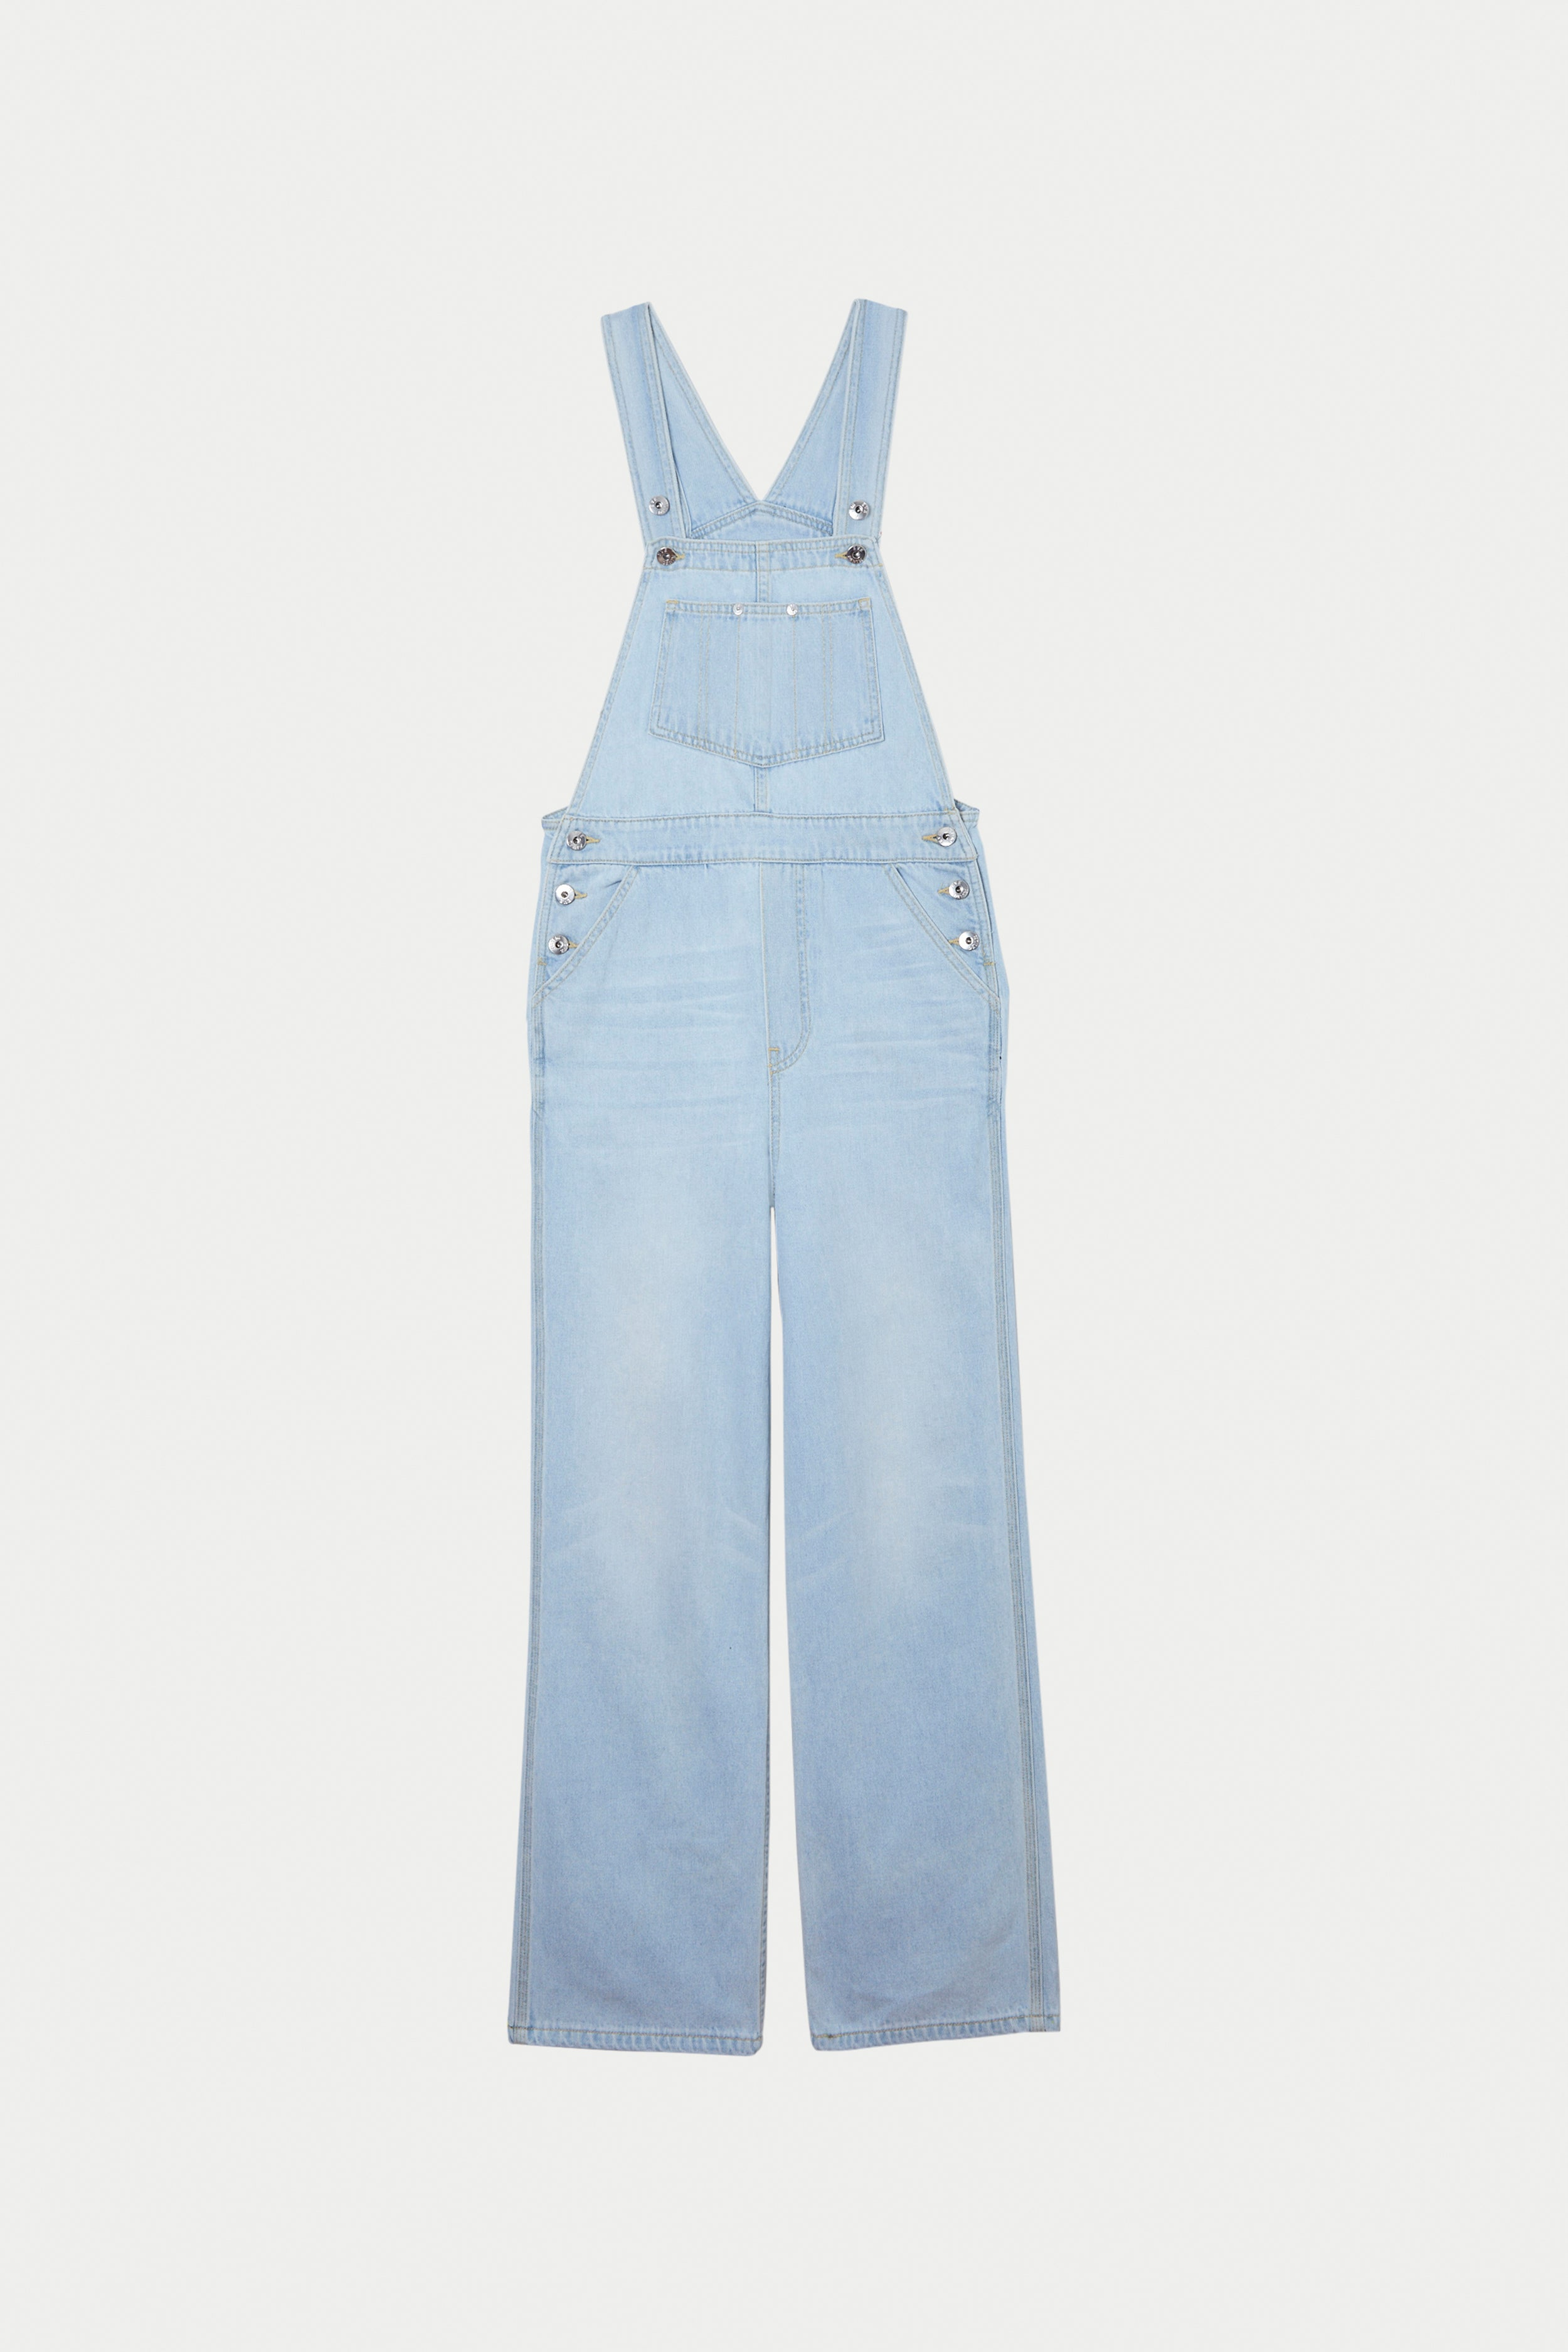 Olympia Overall (4173690536013)